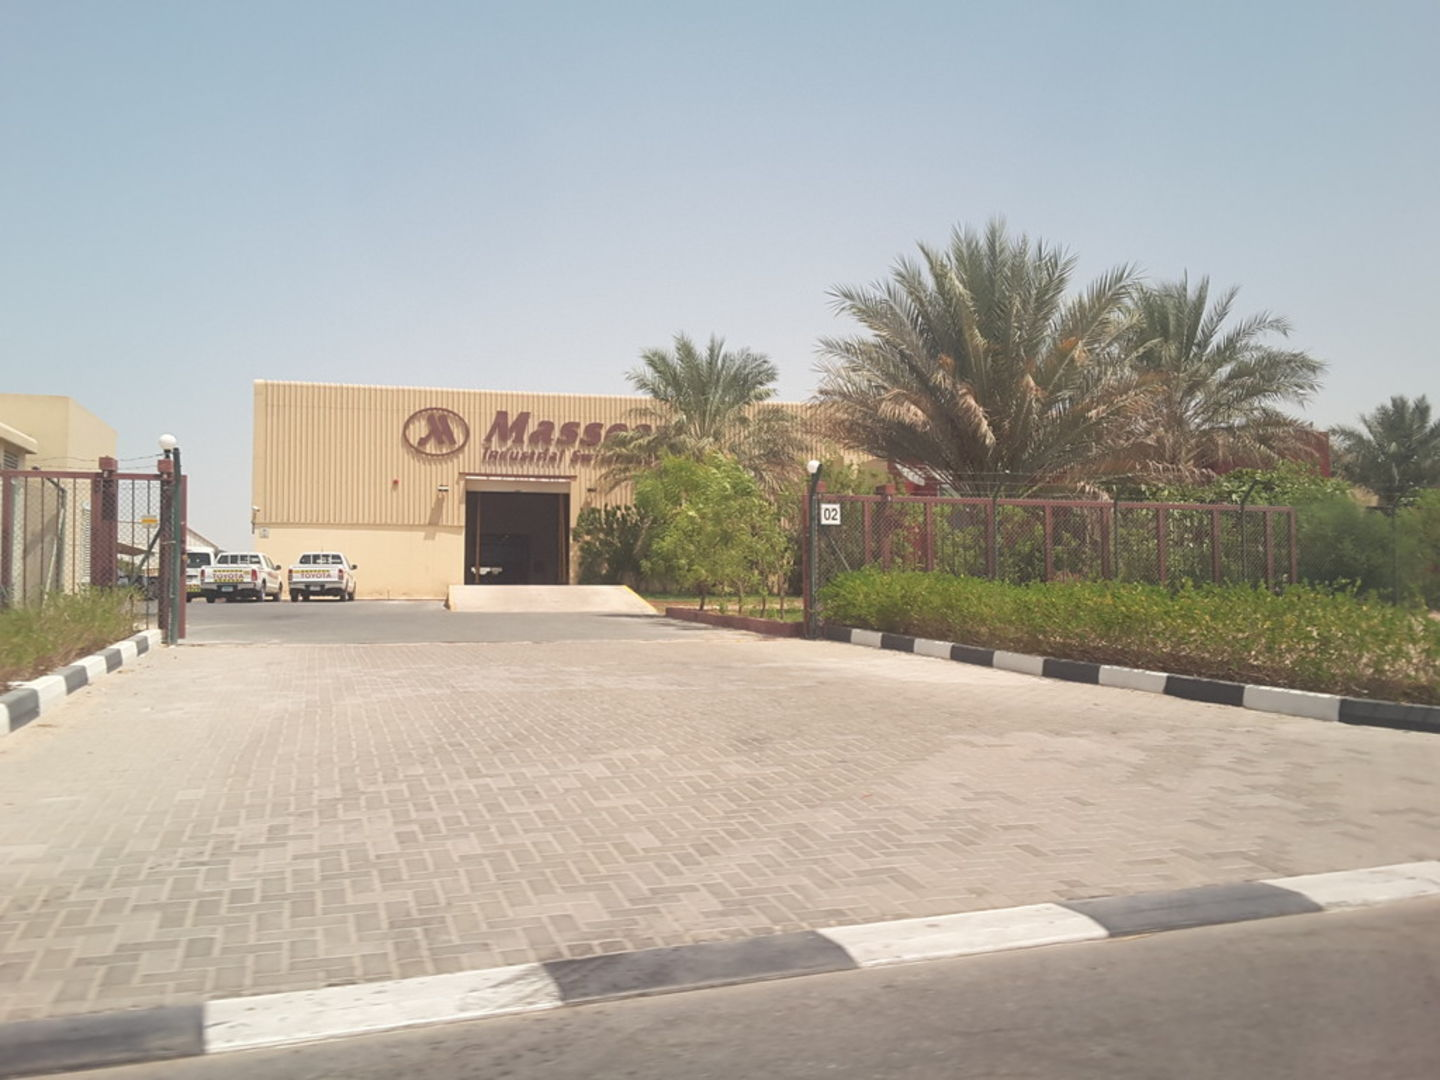 HiDubai-business-masseera-industrial-switchgear-b2b-services-distributors-wholesalers-jebel-ali-industrial-2-dubai-2